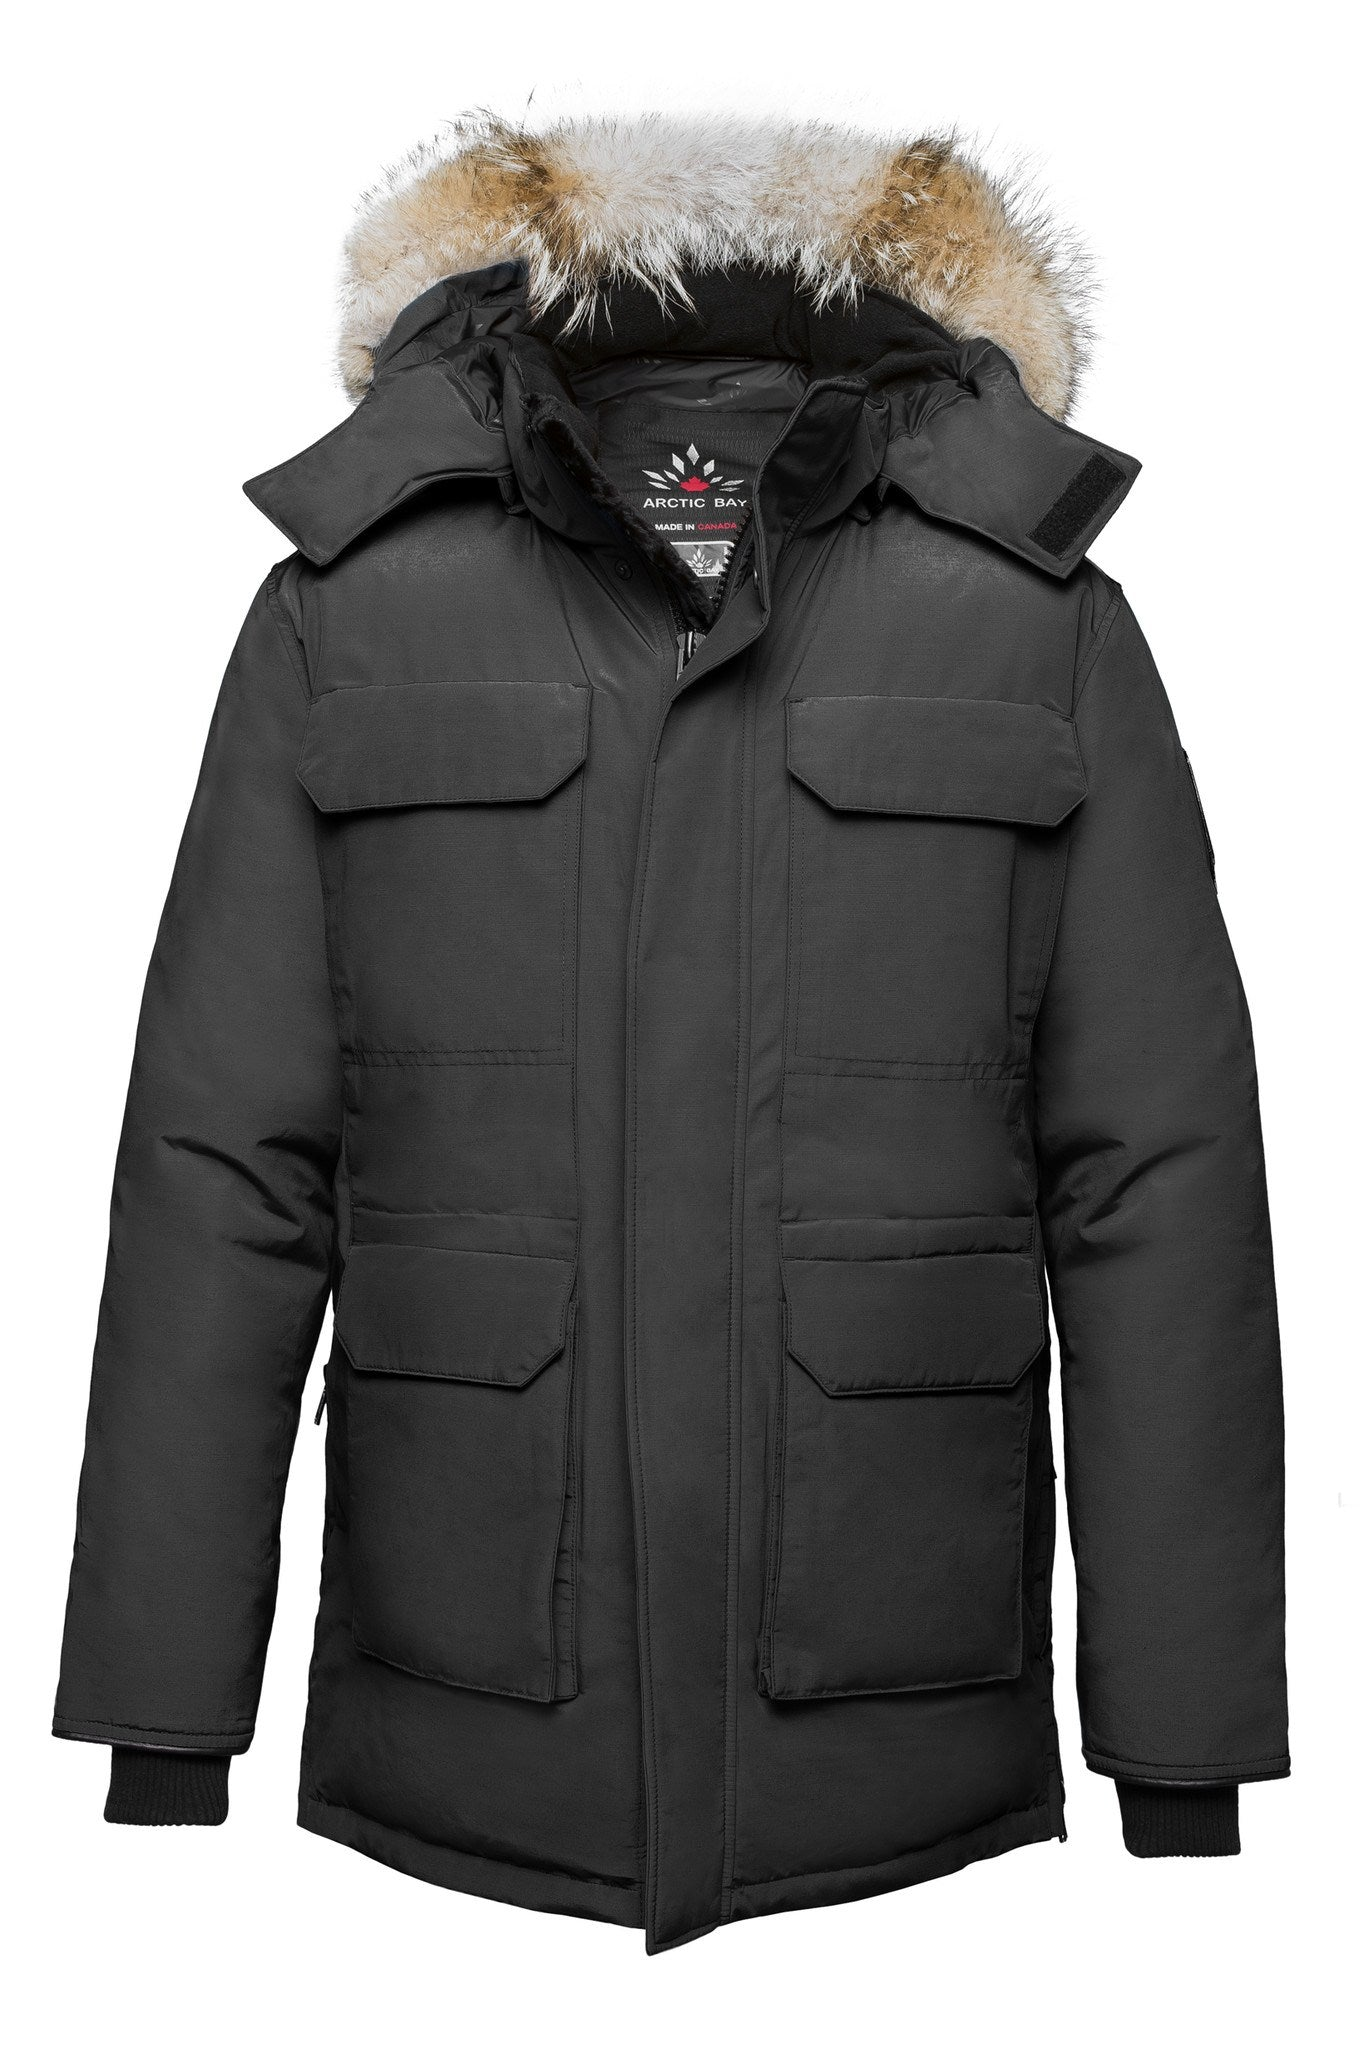 Men's winter parkas canada